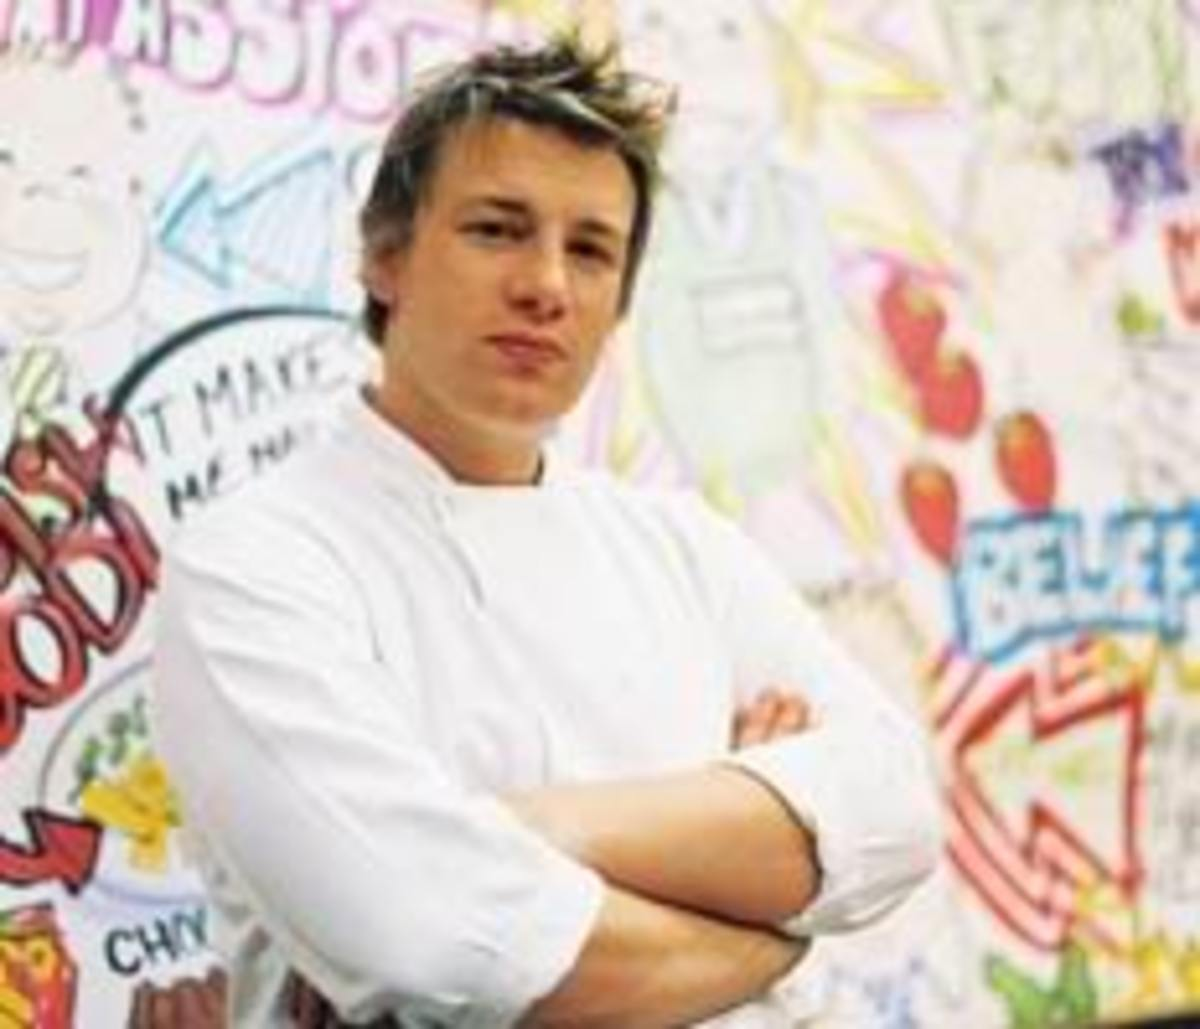 Jamie Oliver, chef, restaurateur, author, and campaigner for more healthful foods in our schools.